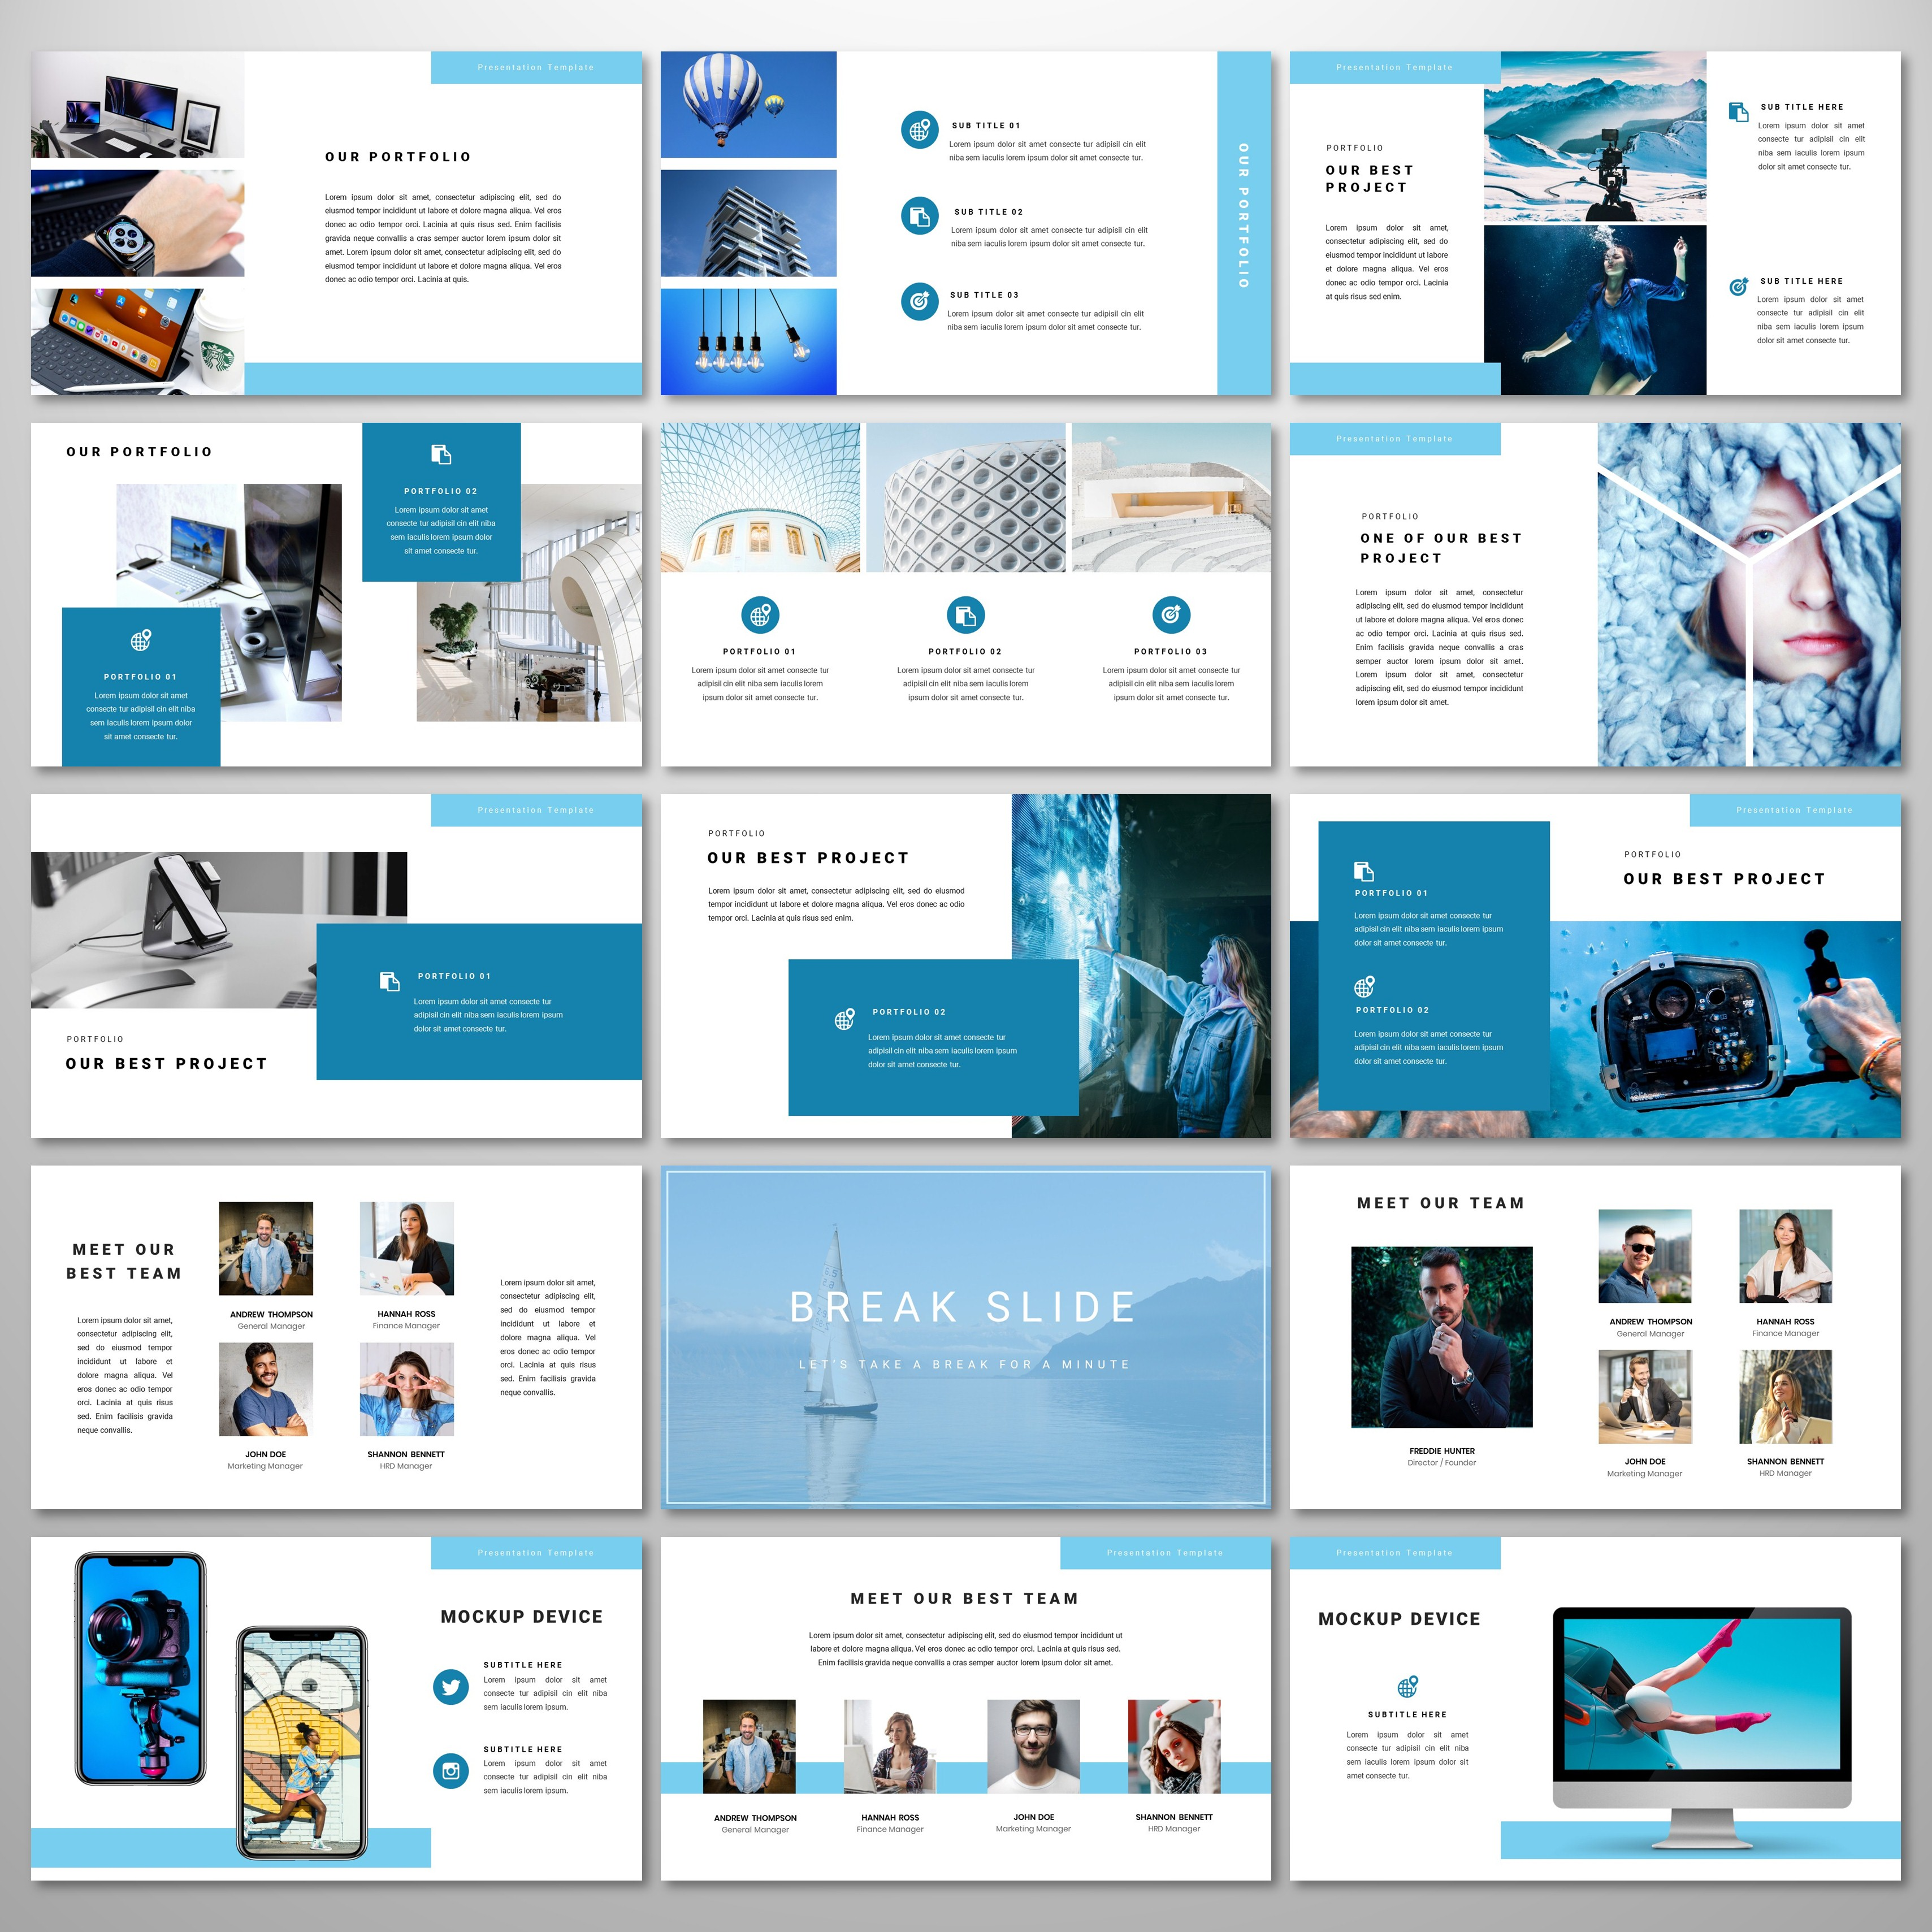 Endscape - PowerPoint Template PowerPoint Template